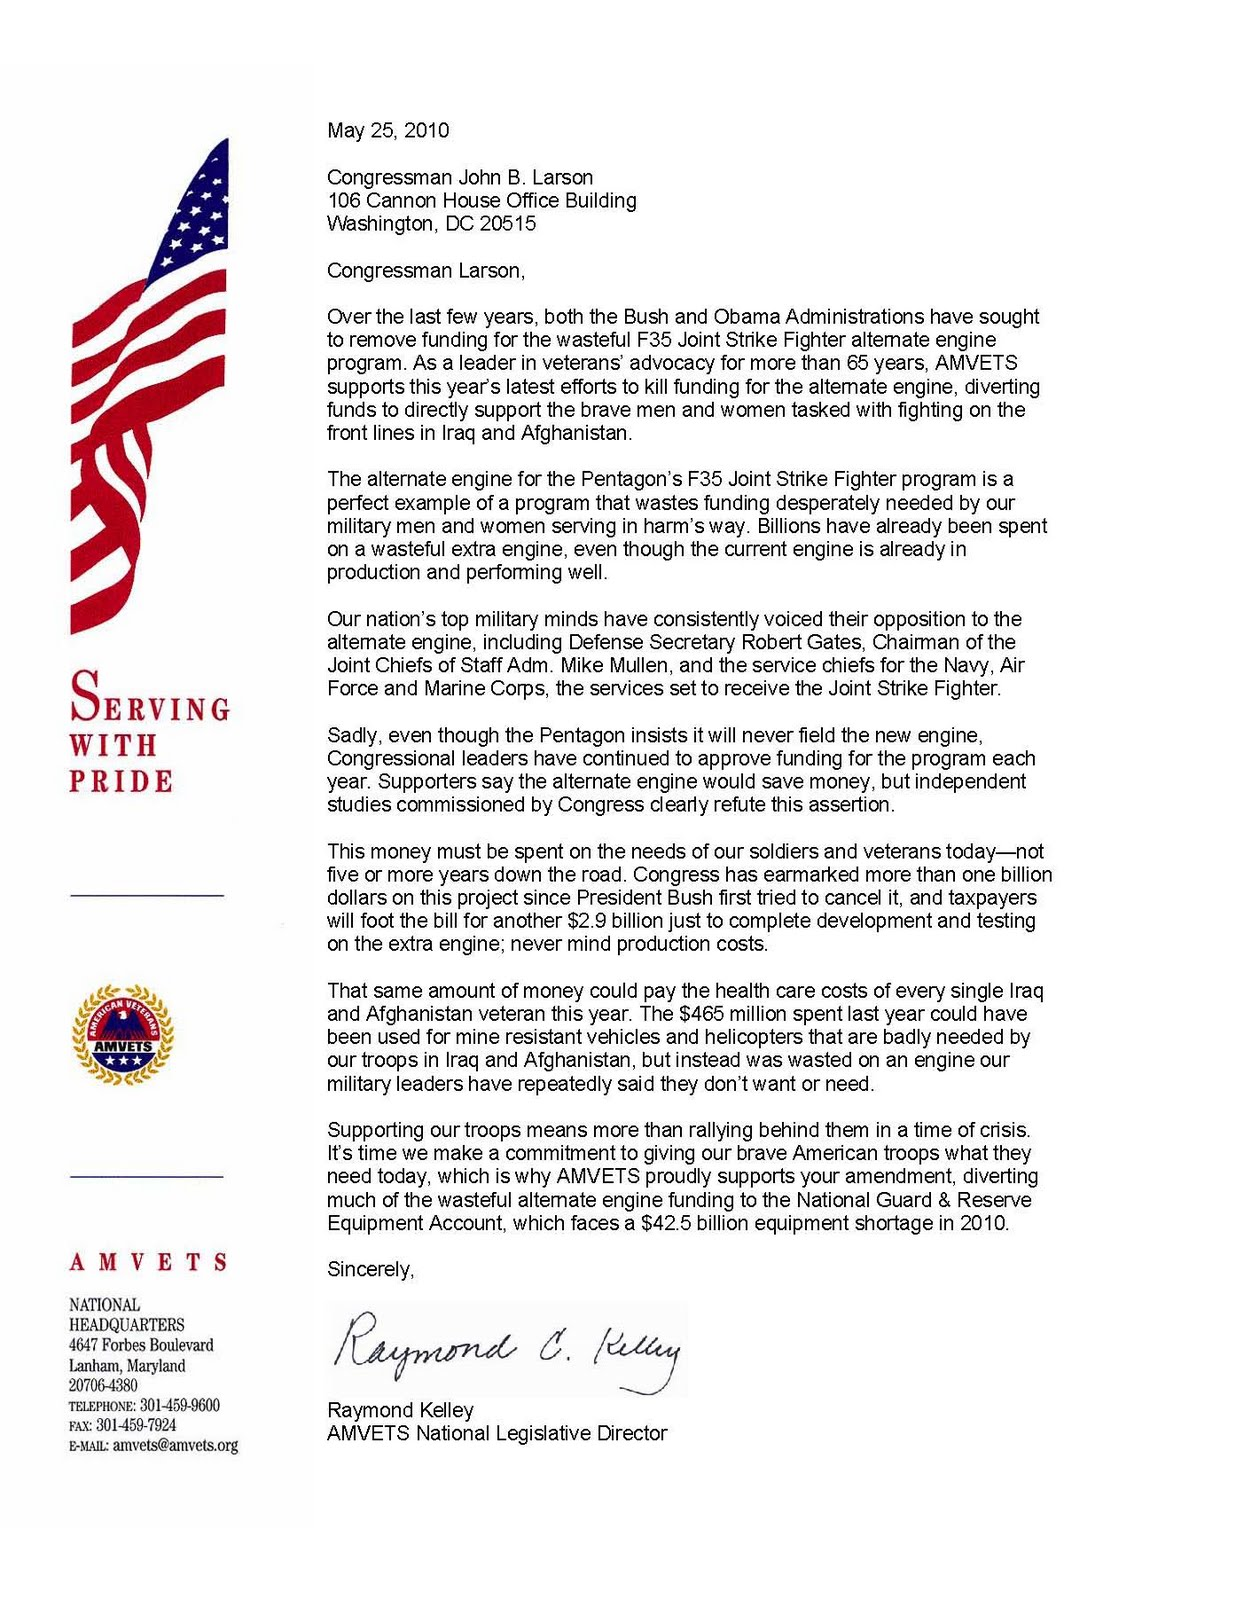 amvets national legislative director ray kelley has sent letters of support for the amendment to legislators playing a key role in the process